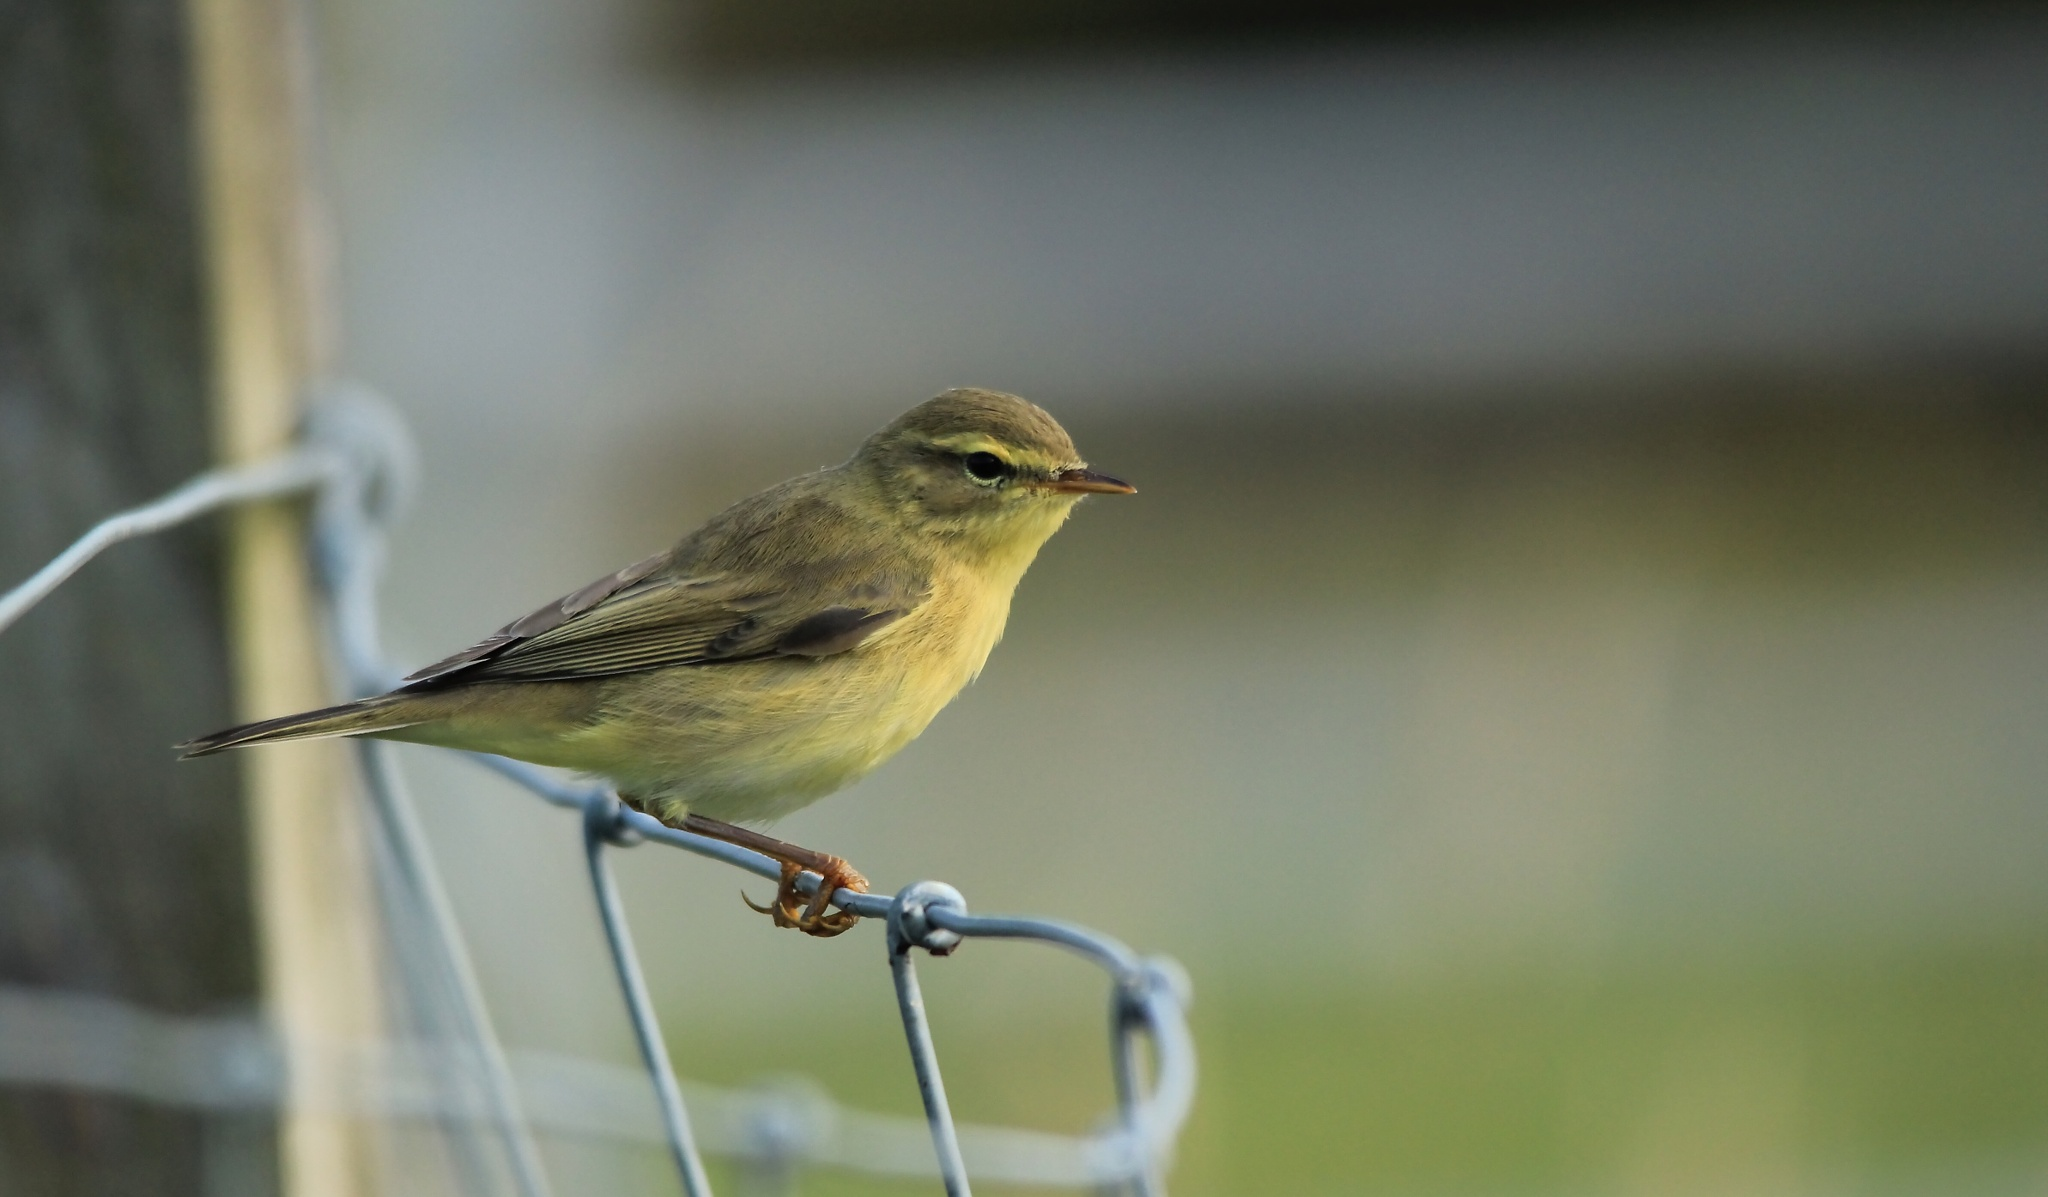 Juvenile Willow Warbler by annecotton